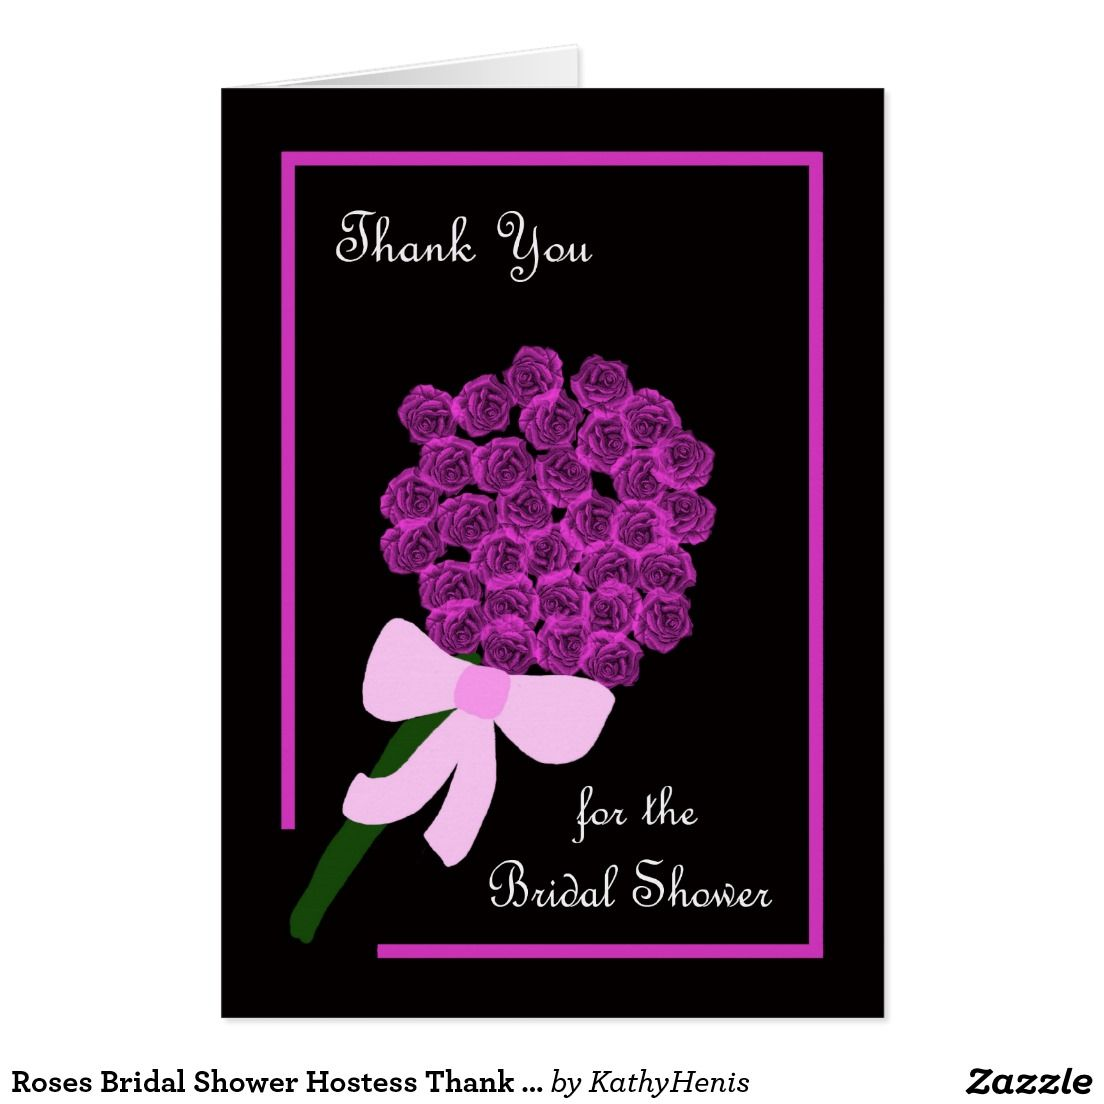 roses bridal shower hostess thank you card